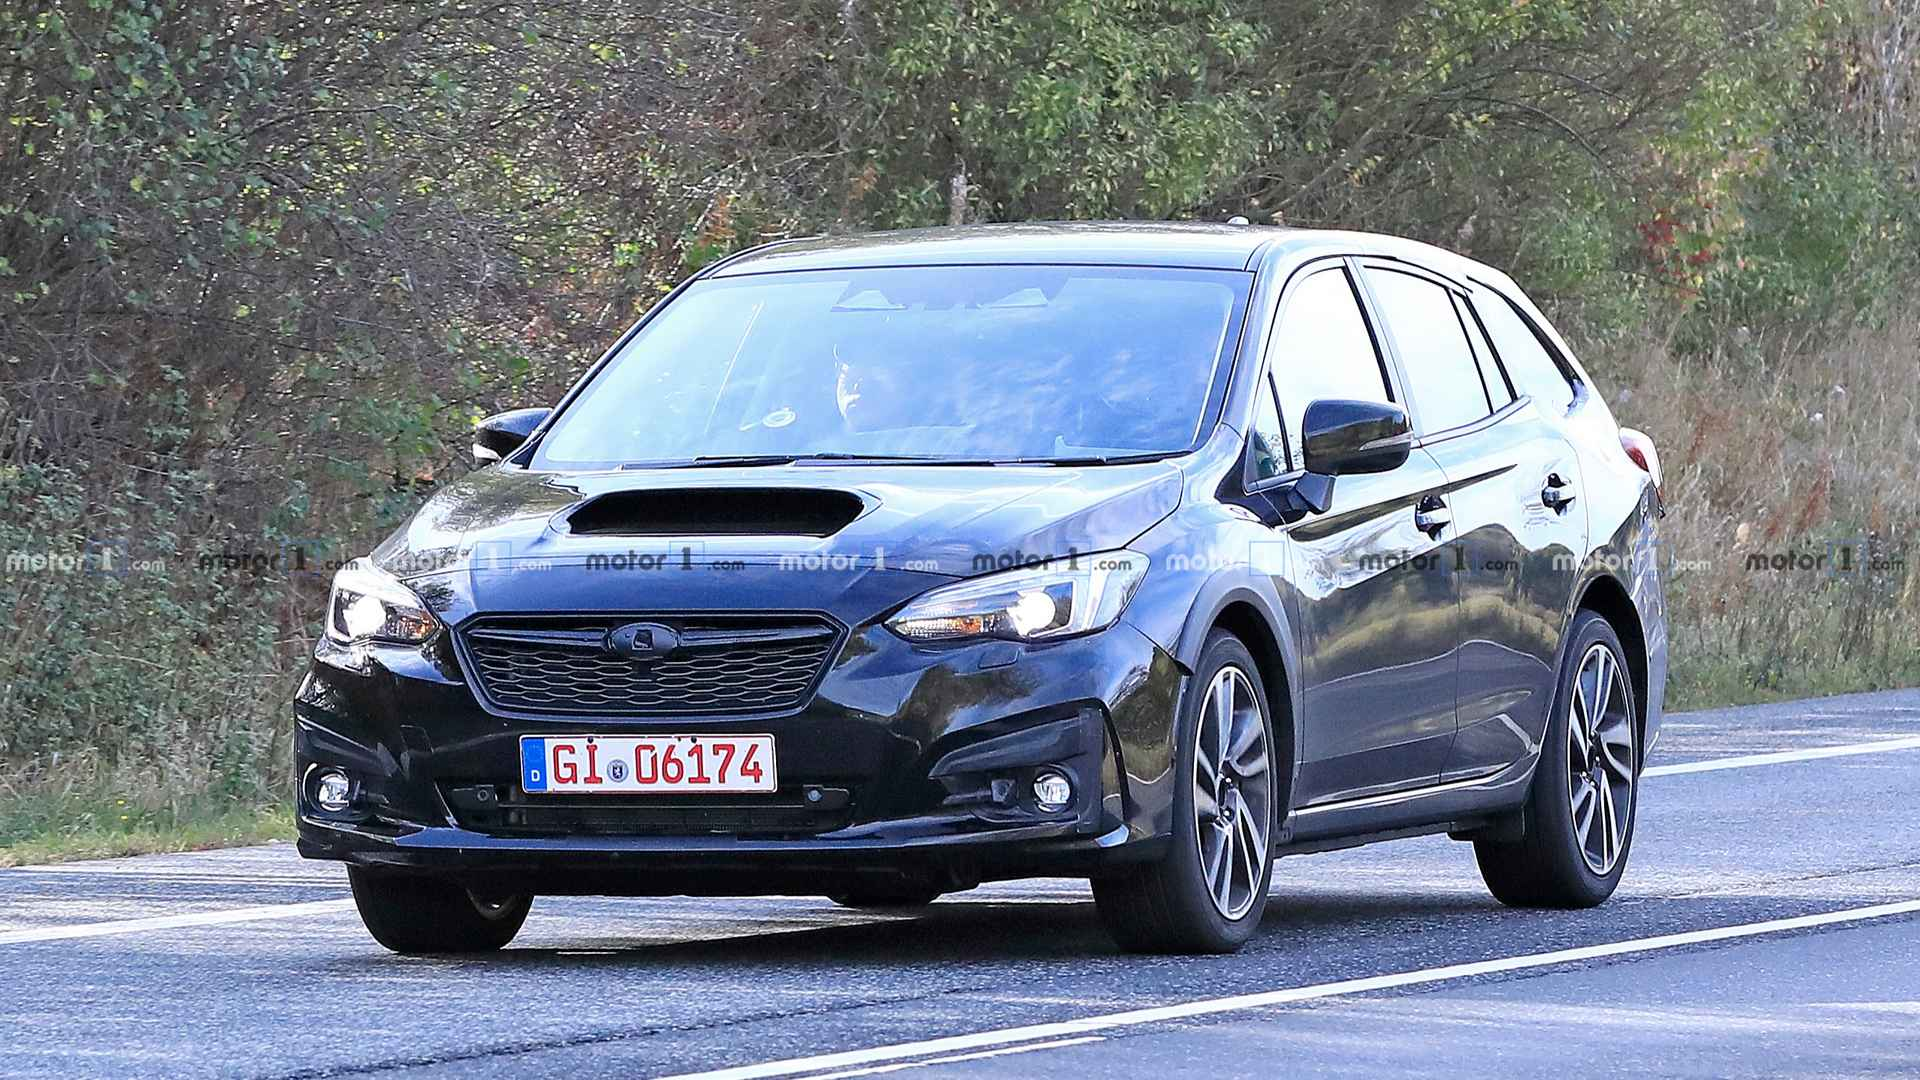 Subaru Levorg Test Mule Spied For The First Time